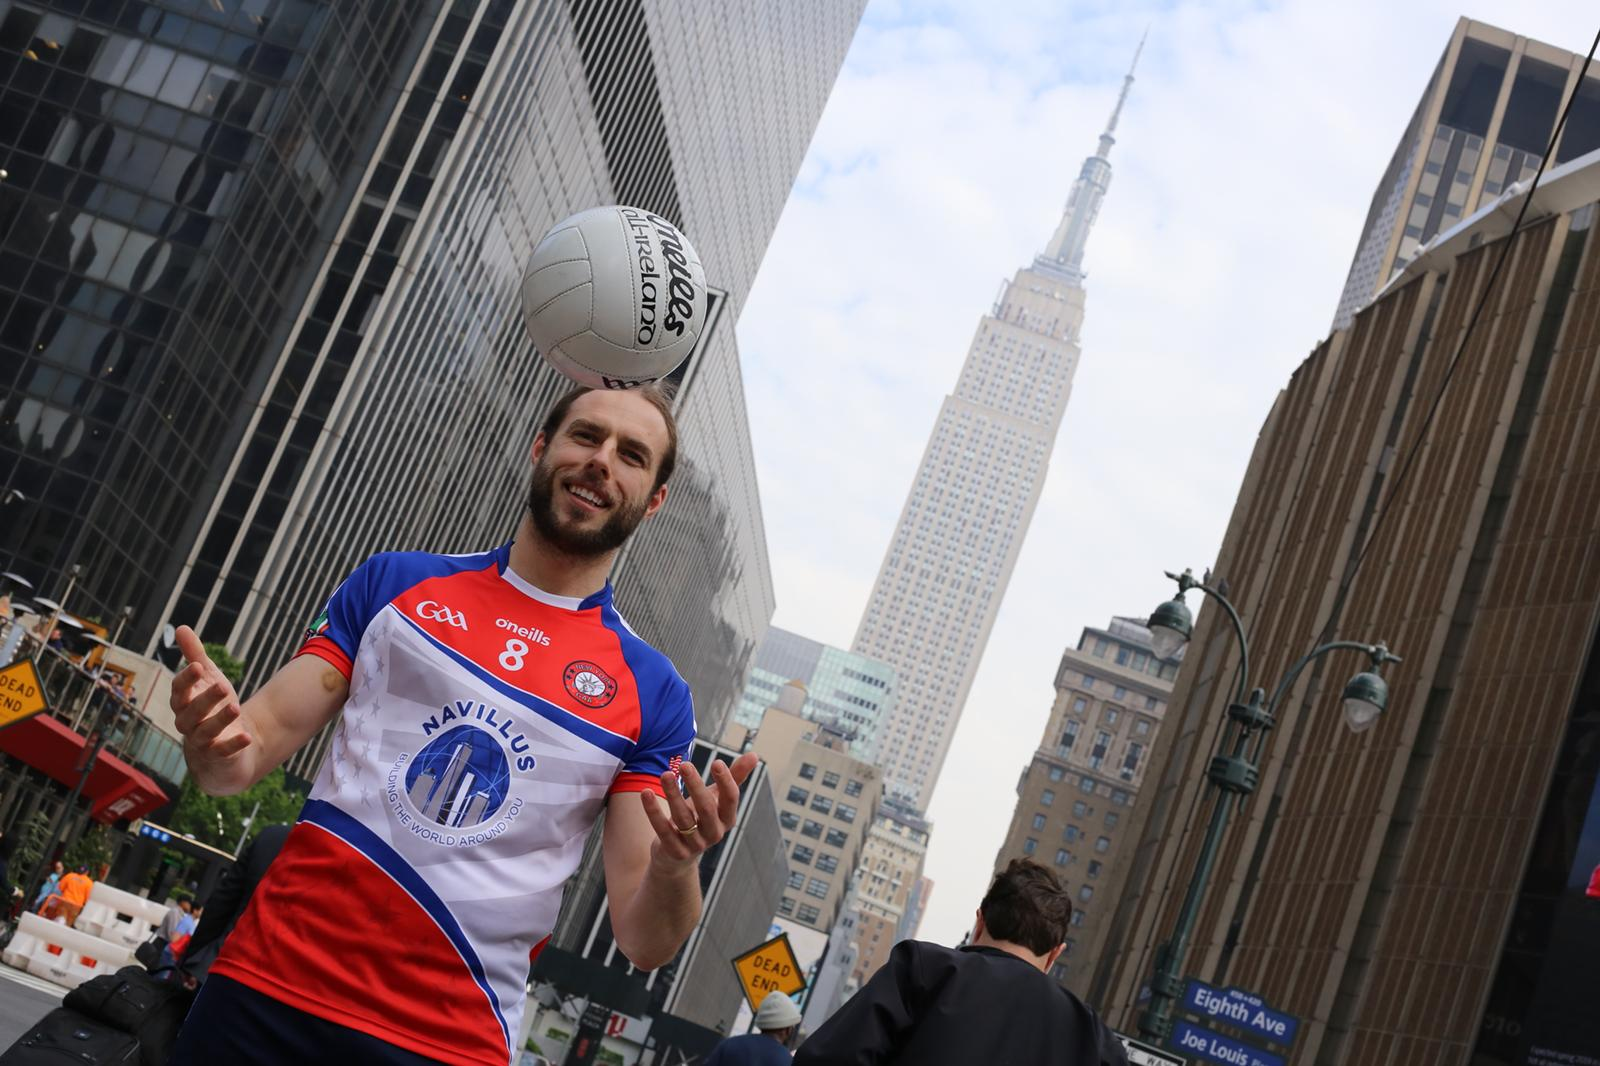 Michael Dorgan in his New York GAA gear before Sundays clash with National League champions Mayo. Image: Seamus Kiernan